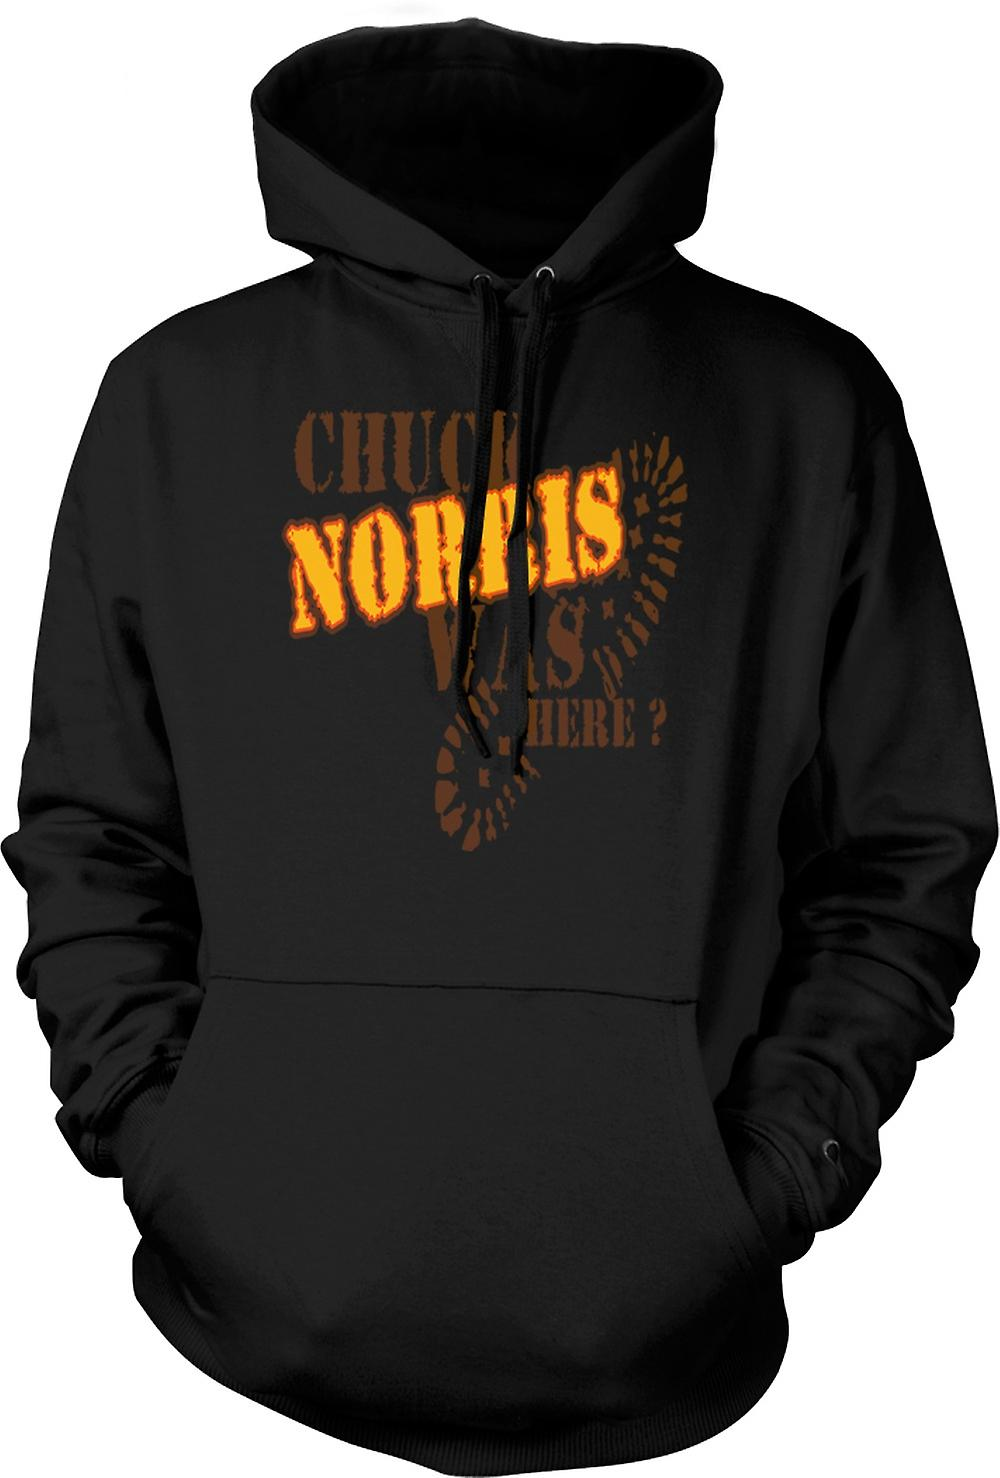 Kids Hoodie - Chuck Norris Was Here - Quote